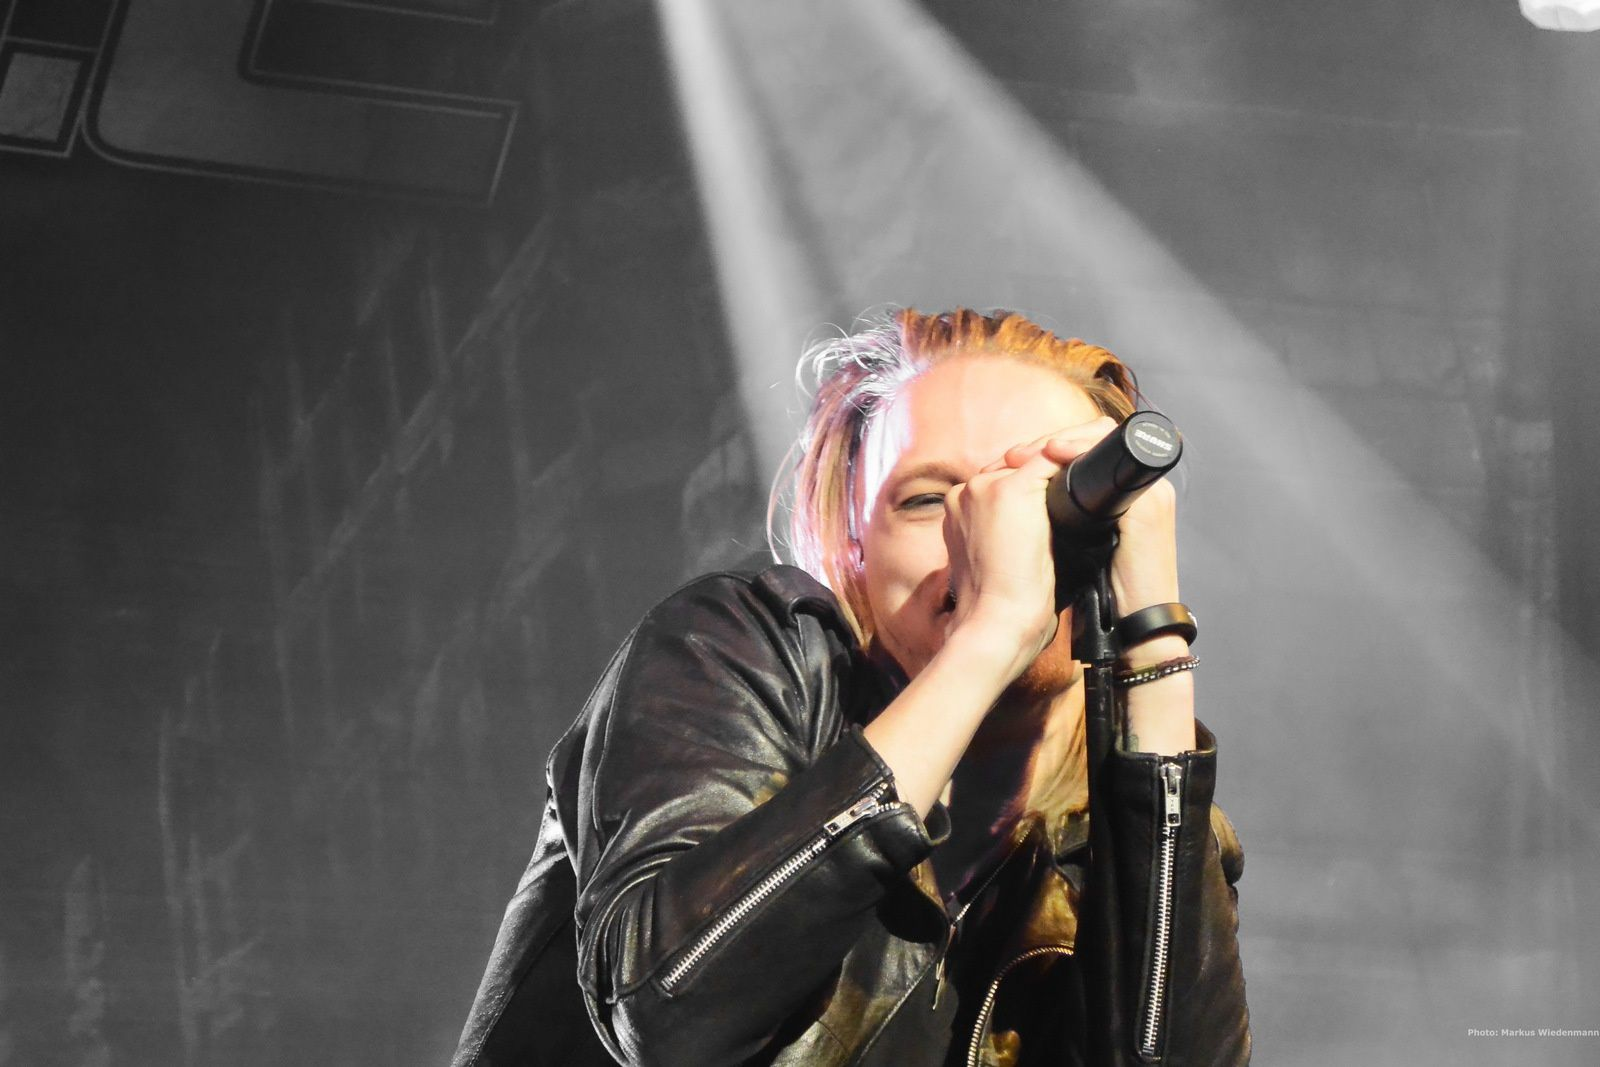 Live review H.E.A.T. / SHERLOCK BROTHERS, Zoetermeer, 16.12.2014